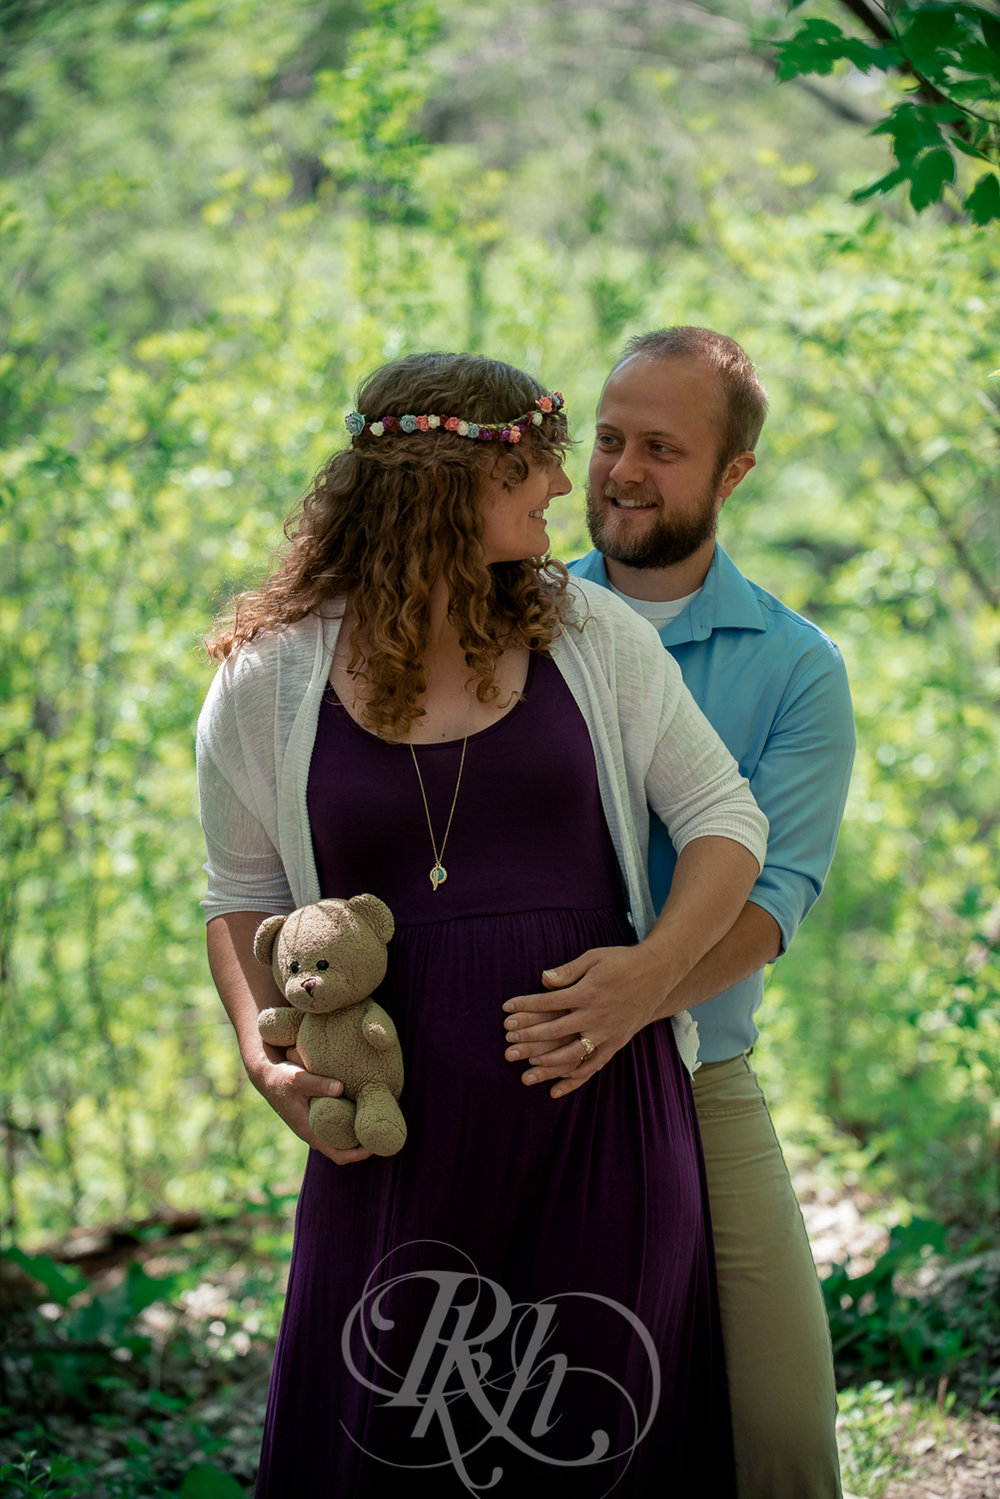 Hailey & Grant - Minnesota Maternity Photography  - RKH Images -9.jpg